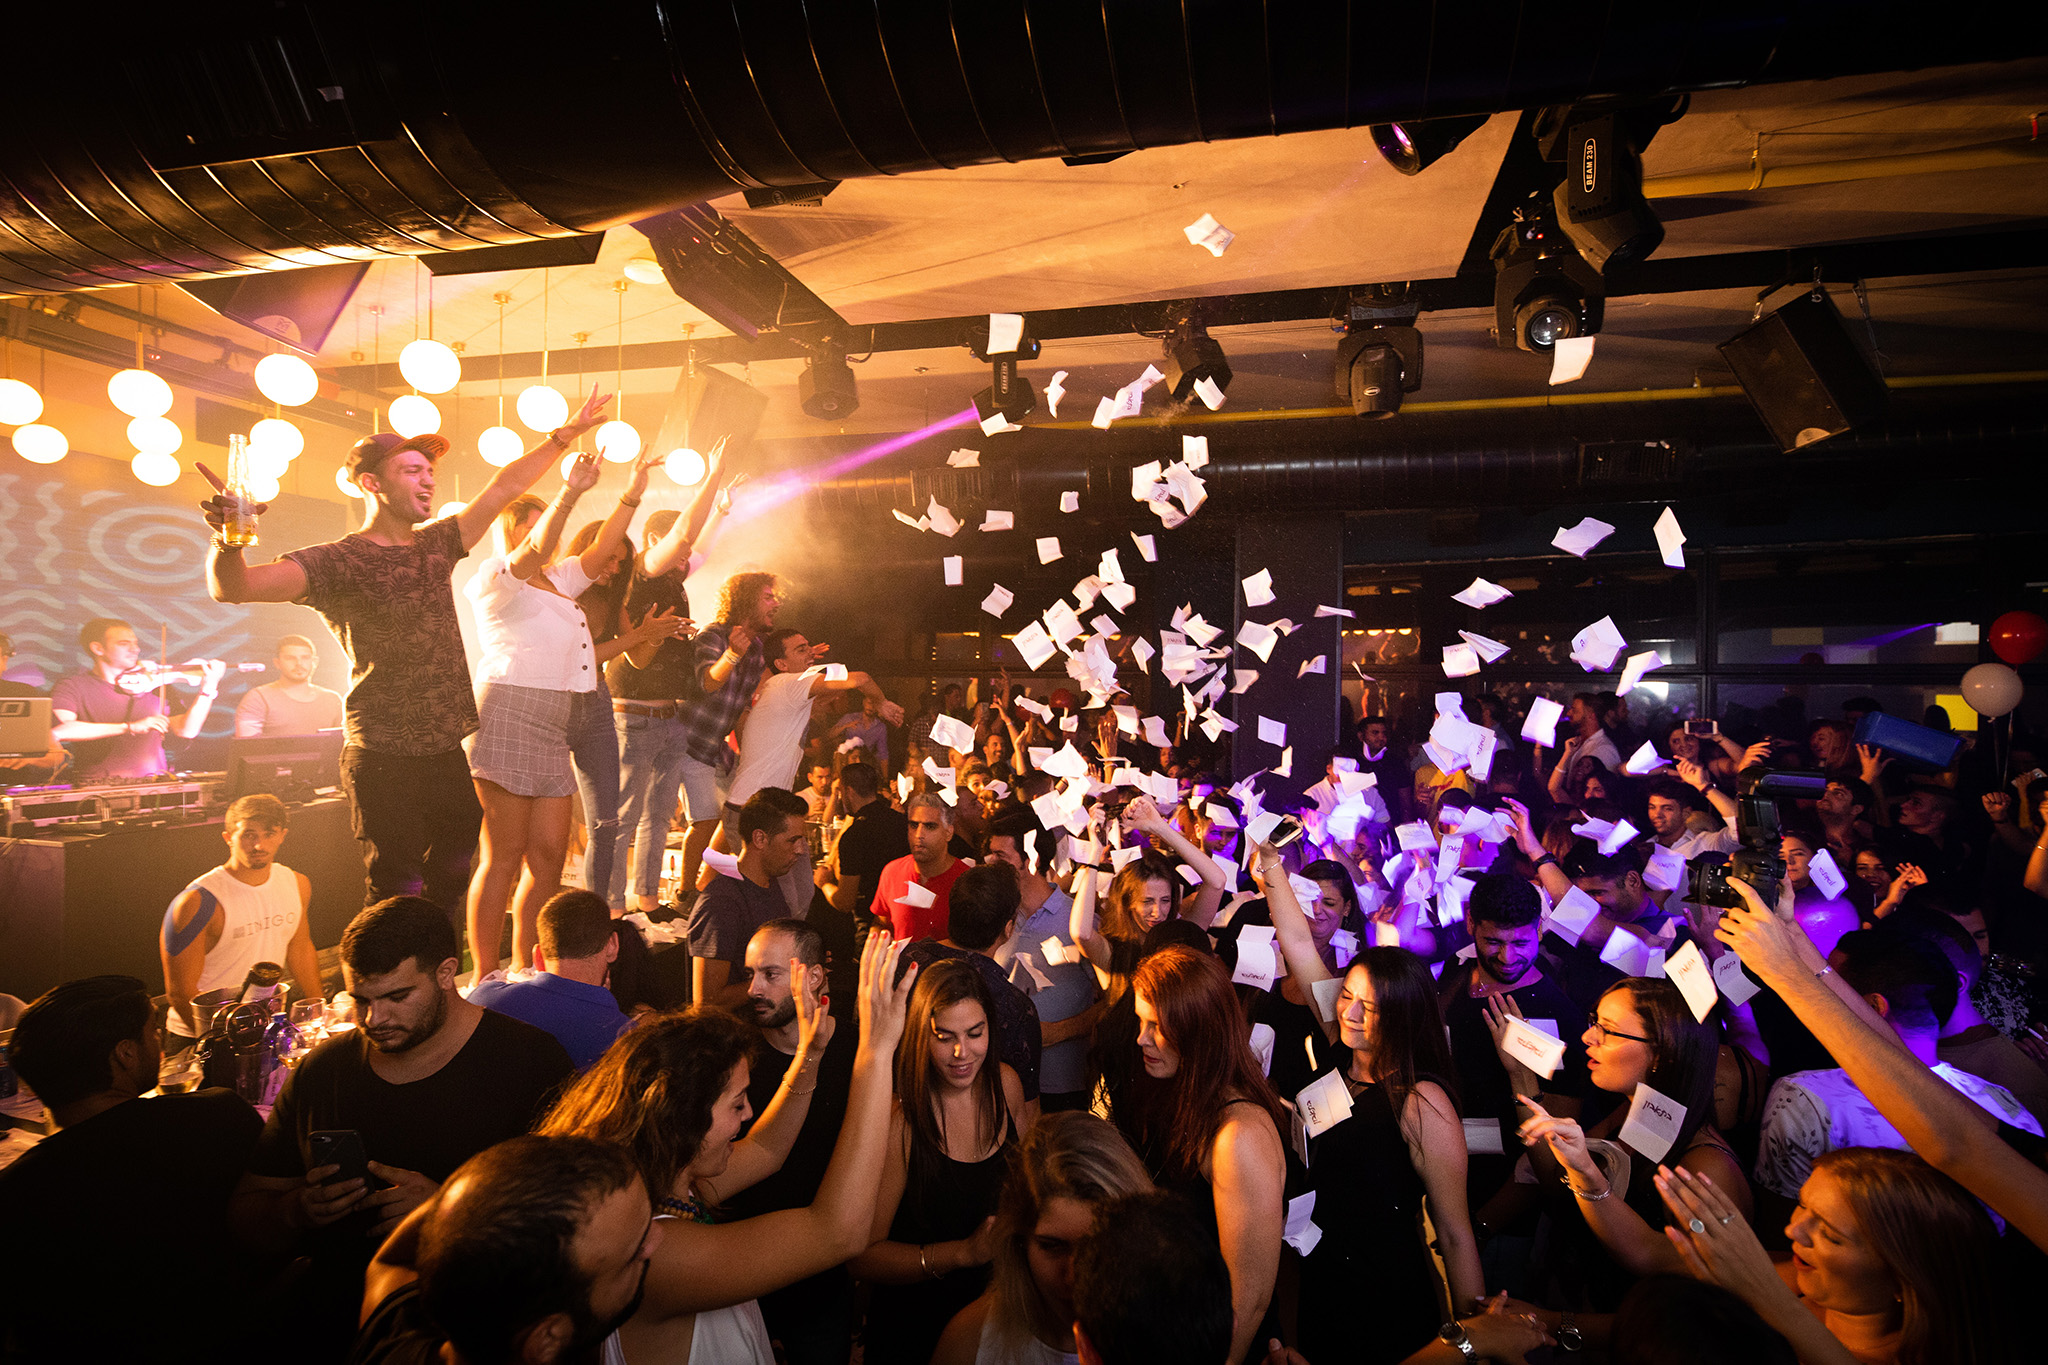 group-of-people-partying-1449795